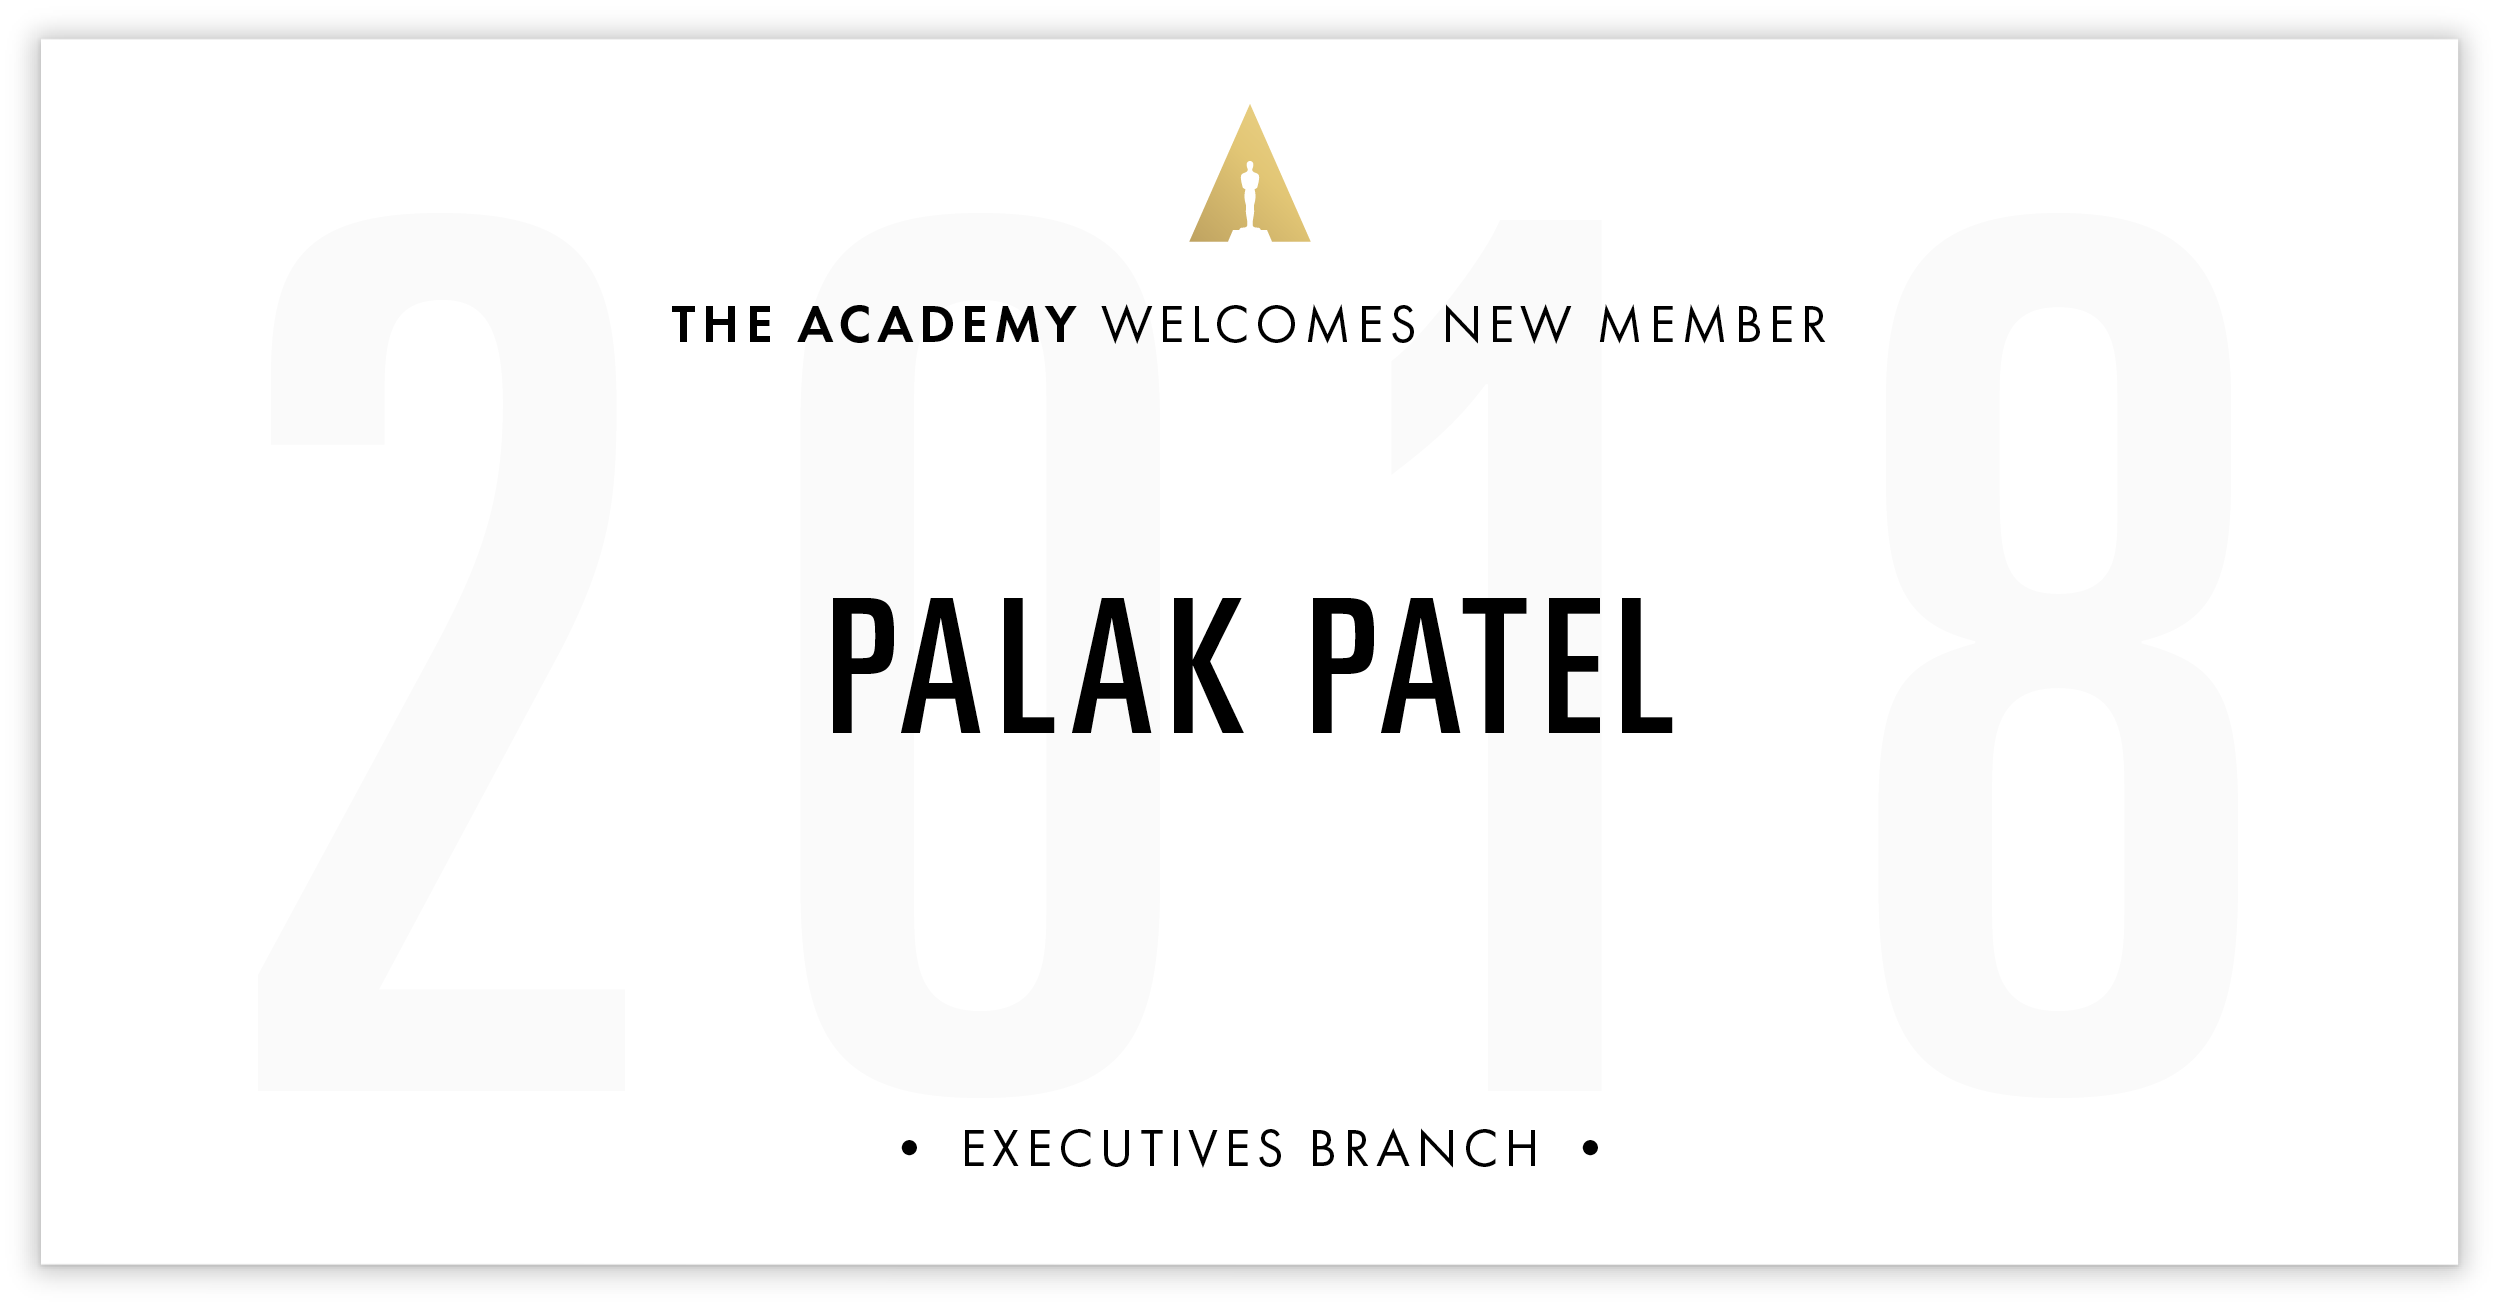 Palak Patel is invited!